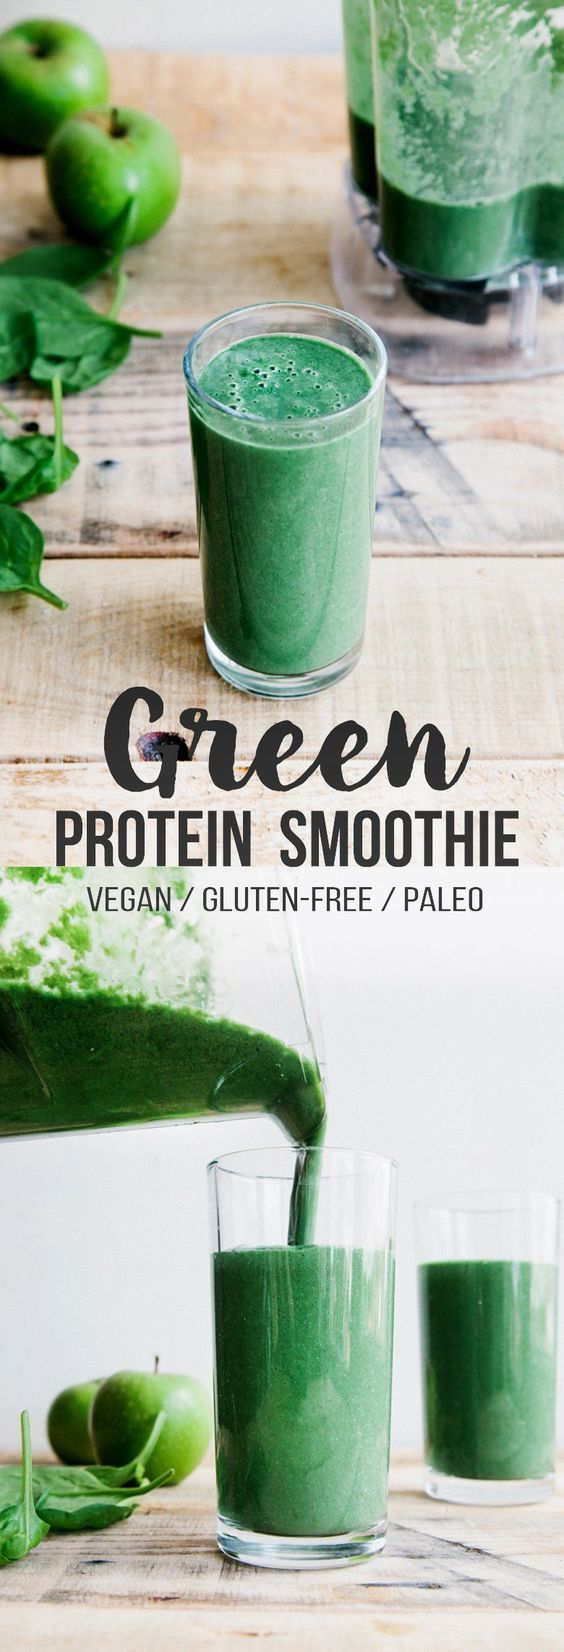 One of the healthiest, yet most delicious, green smoothies I've tried!